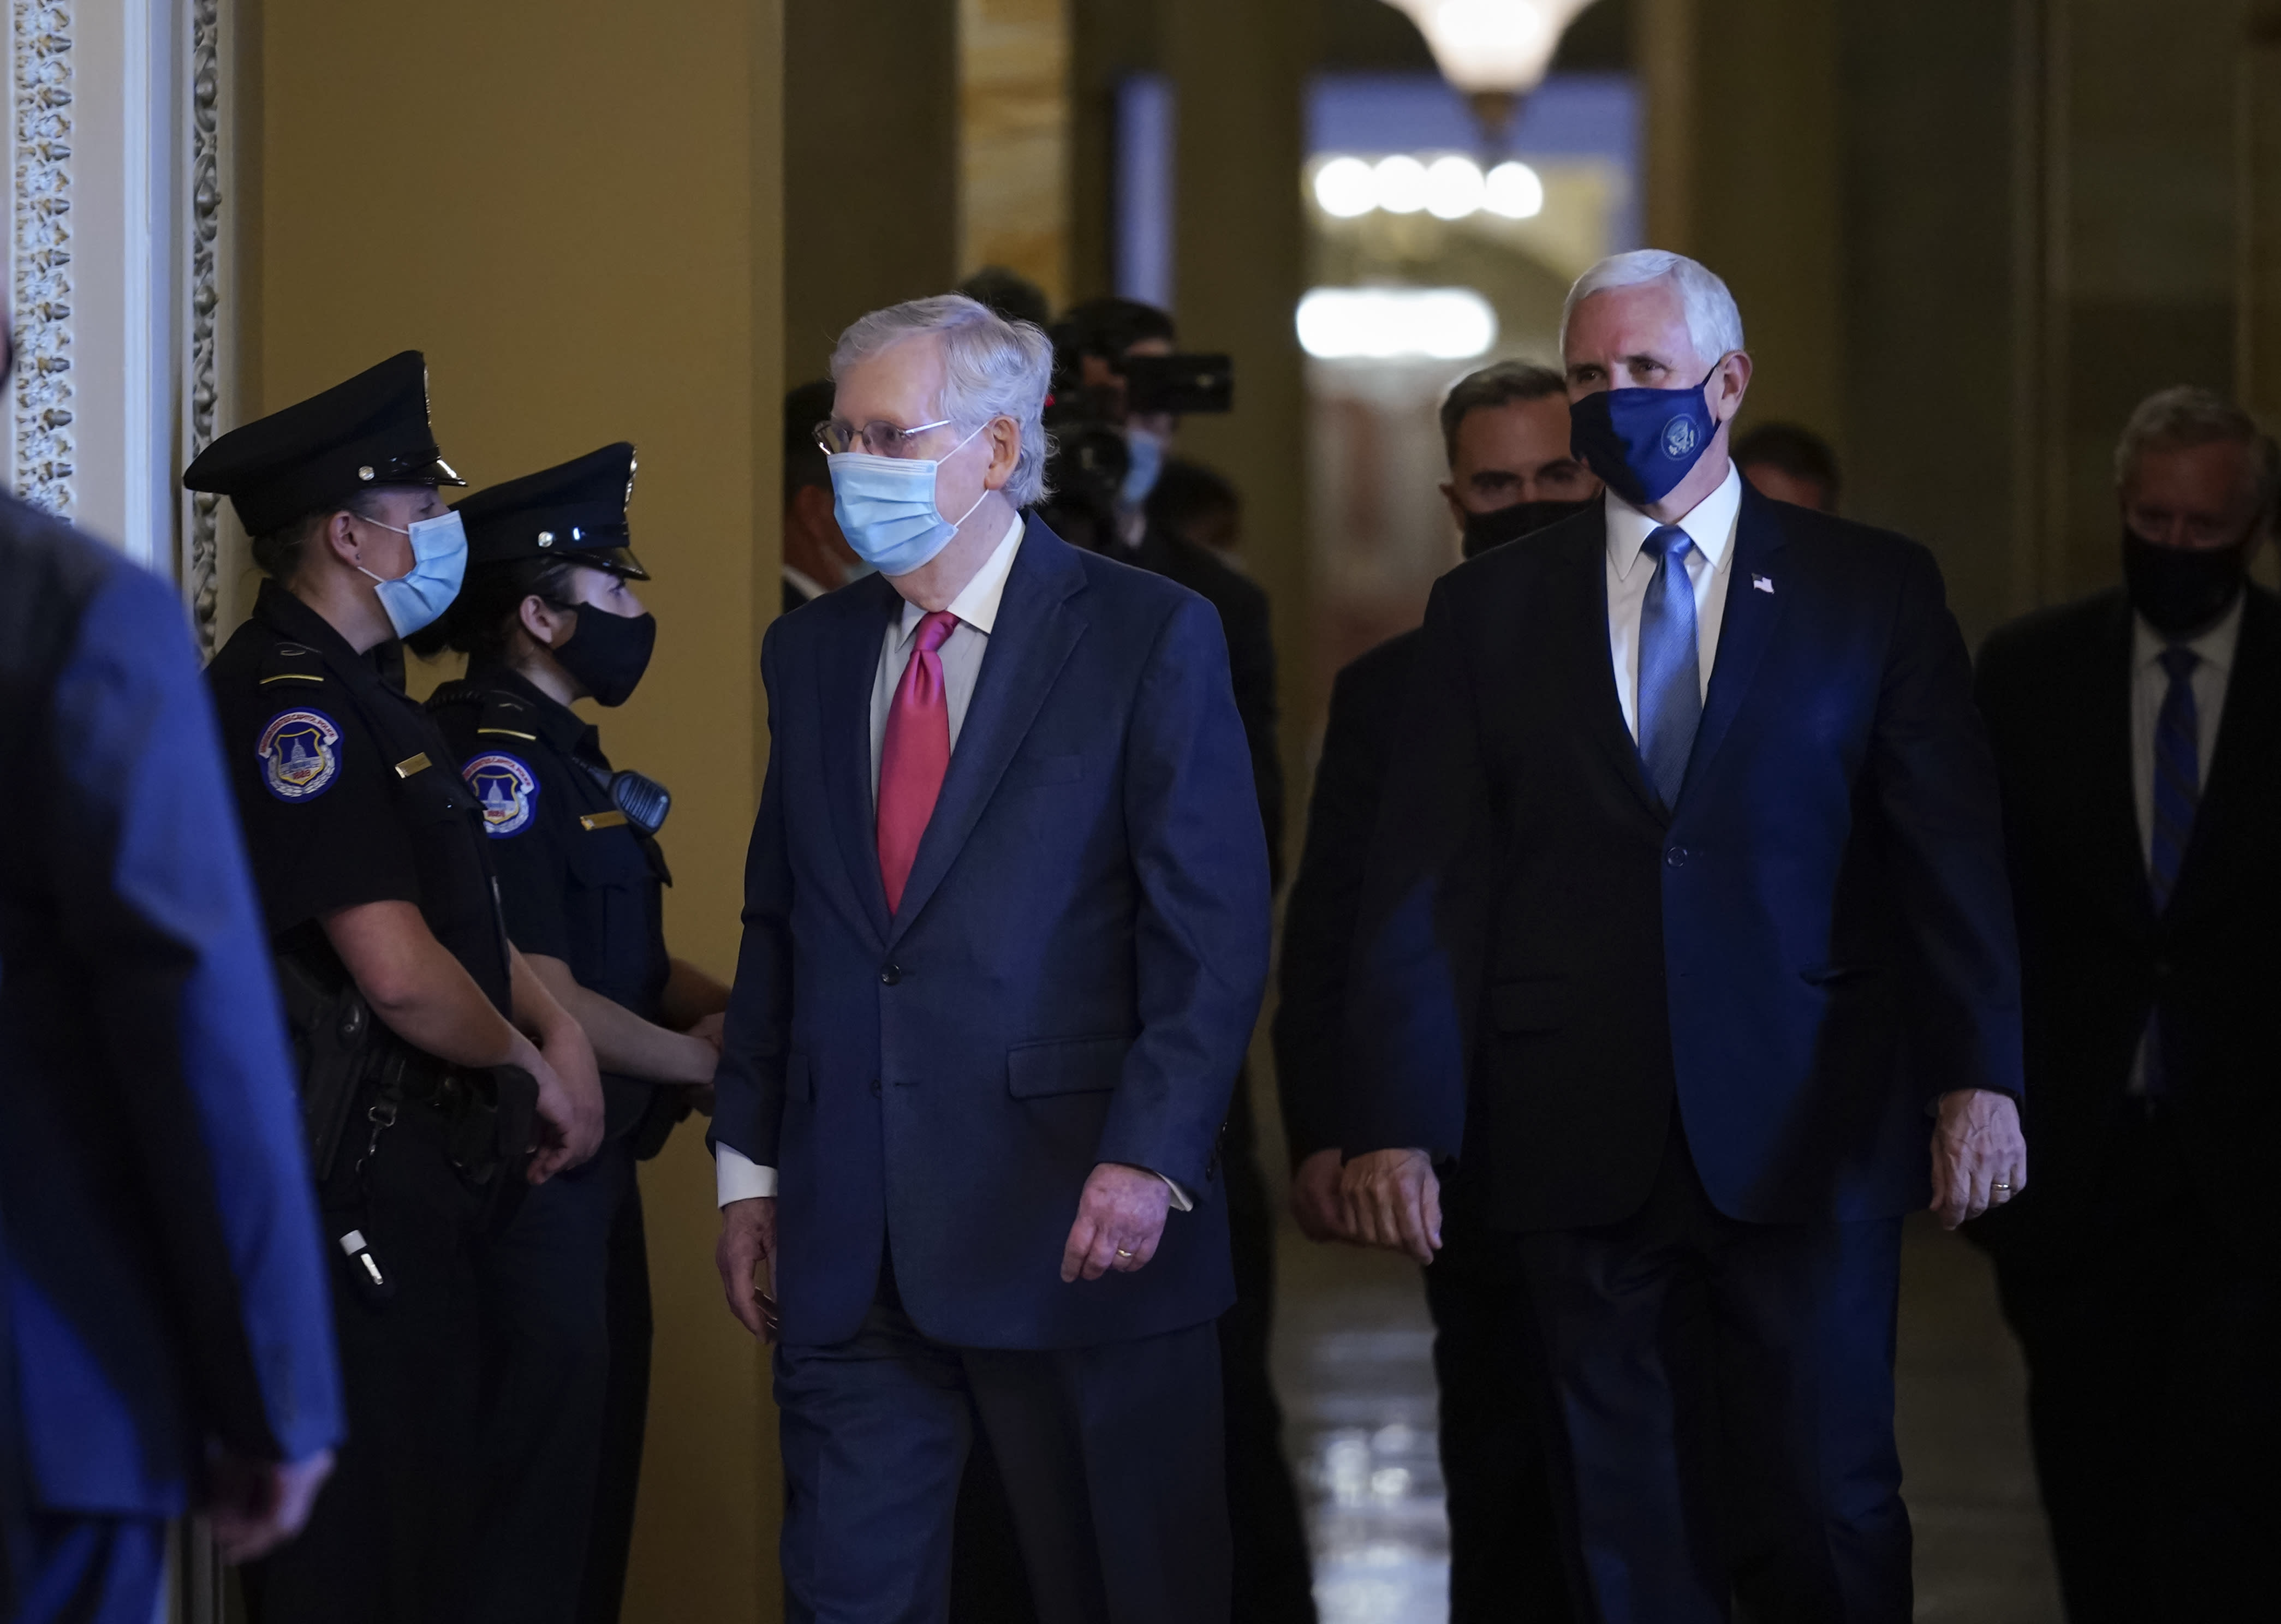 Senate Majority Leader Mitch McConnell, R-Ky., left, and Vice President Mike Pence, right, walk to hold a private meeting with Judge Amy Coney Barrett, President Donald Trump's nominee for the U.S. Supreme Court, at the Capitol in Washington, Tuesday, Sept. 29, 2020. (AP Photo/J. Scott Applewhite)